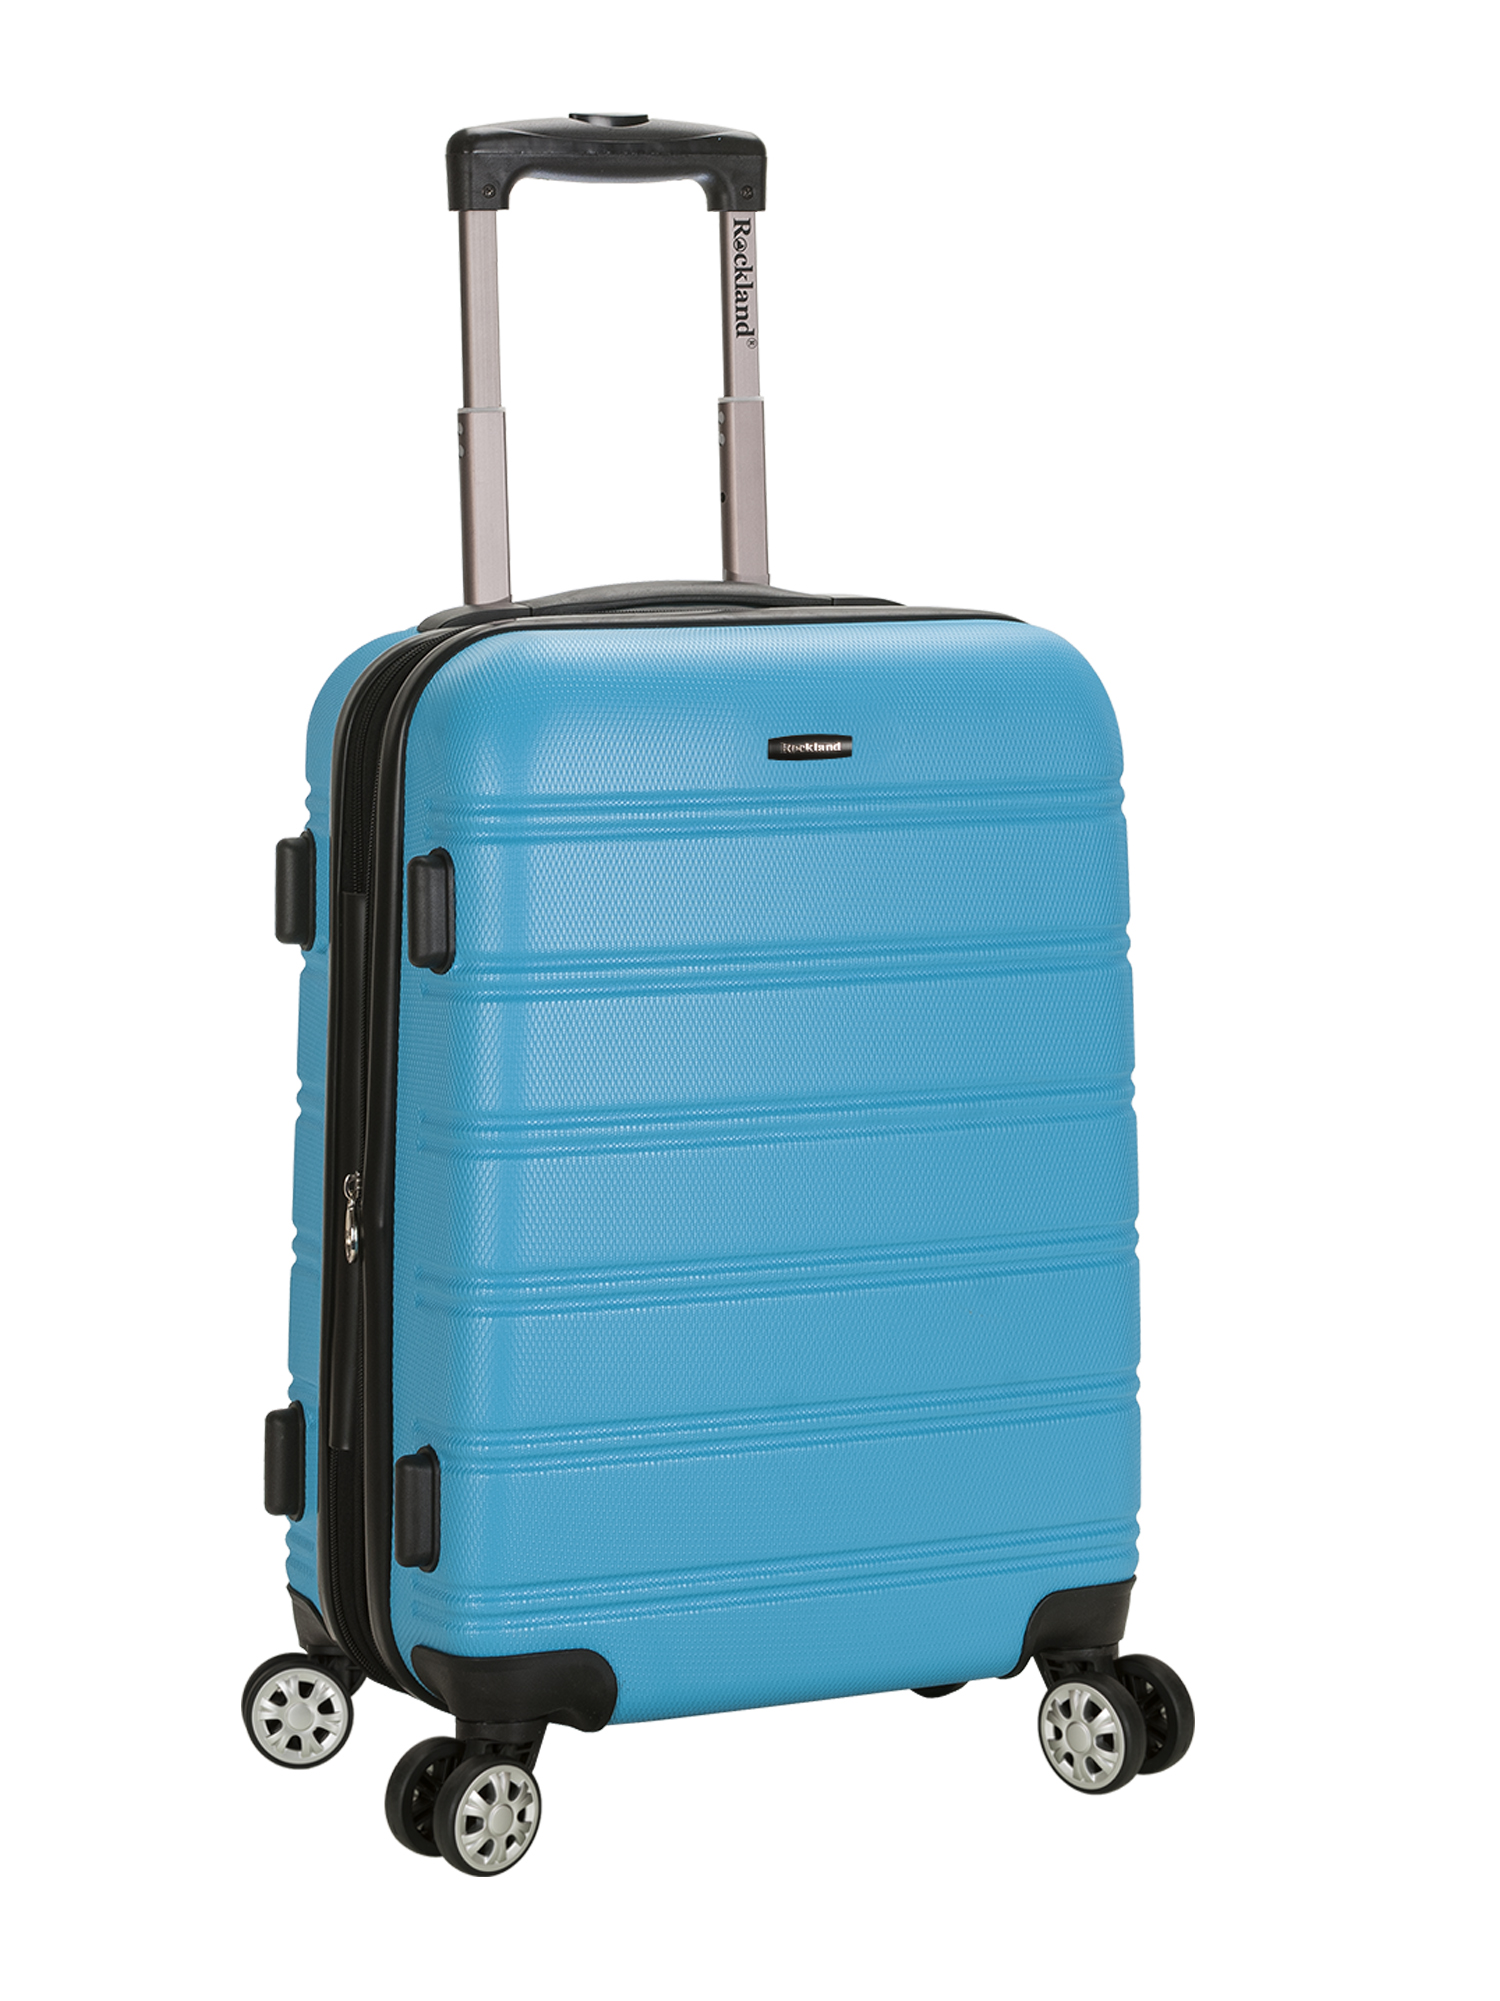 Travel Luggage Melbourne Rockland Luggage Melbourne 20 Quot Hard Sided Expandable Carry